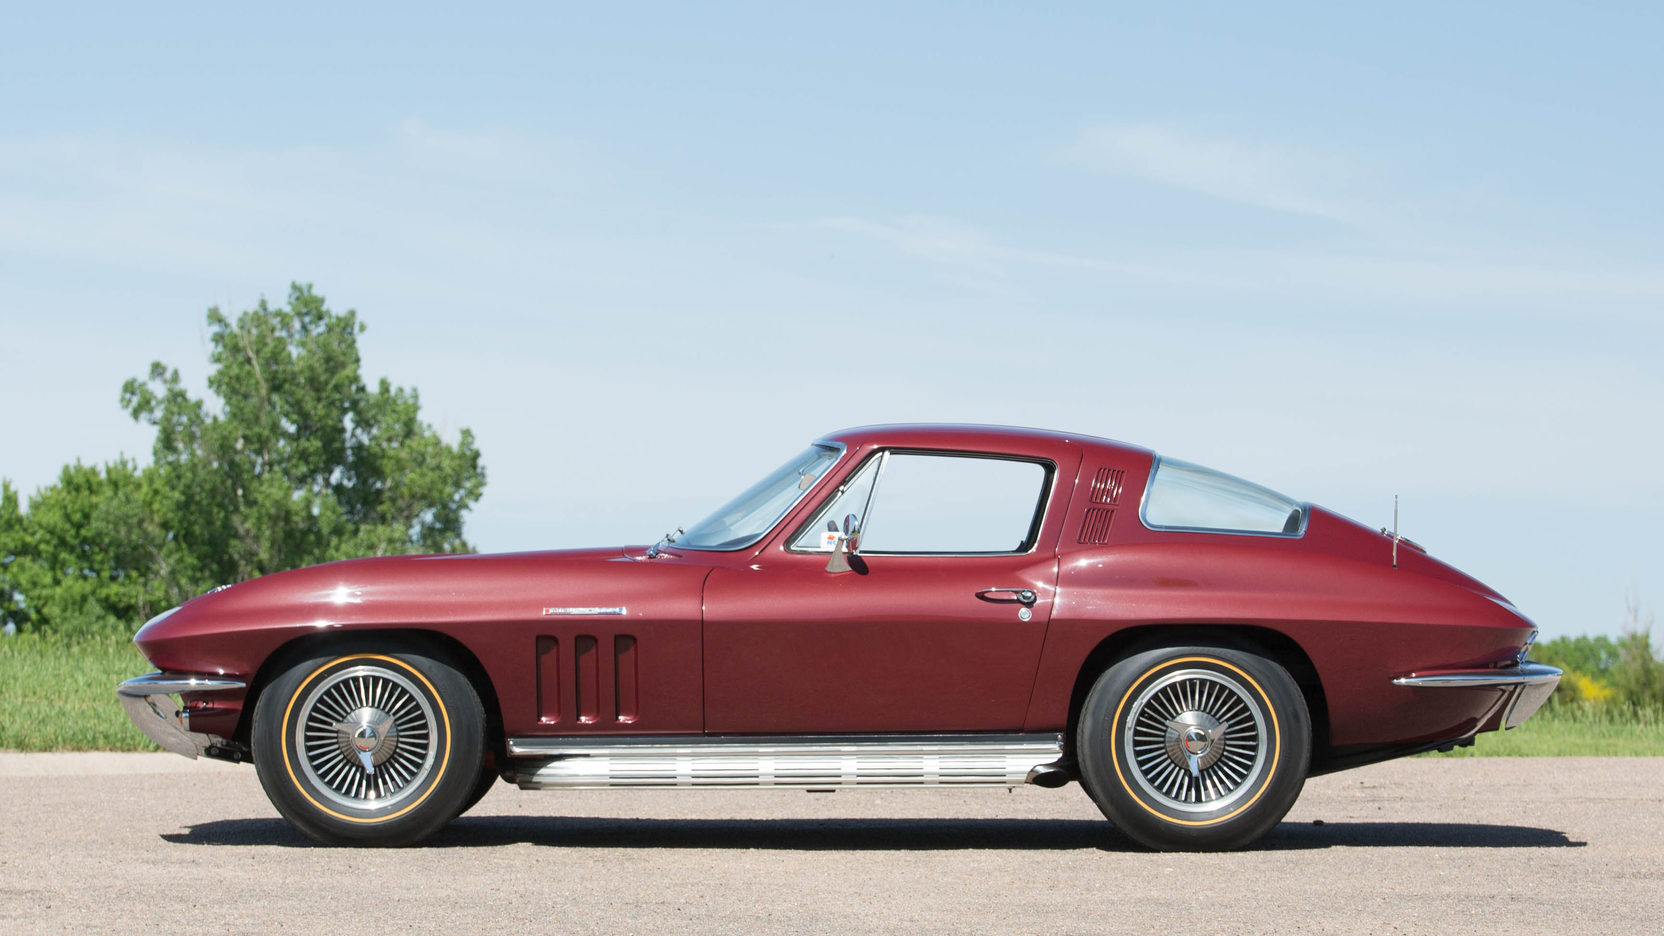 By the 1965 model year the Corvette Sting Ray's styling had been refined and the car's brakes were also improved.